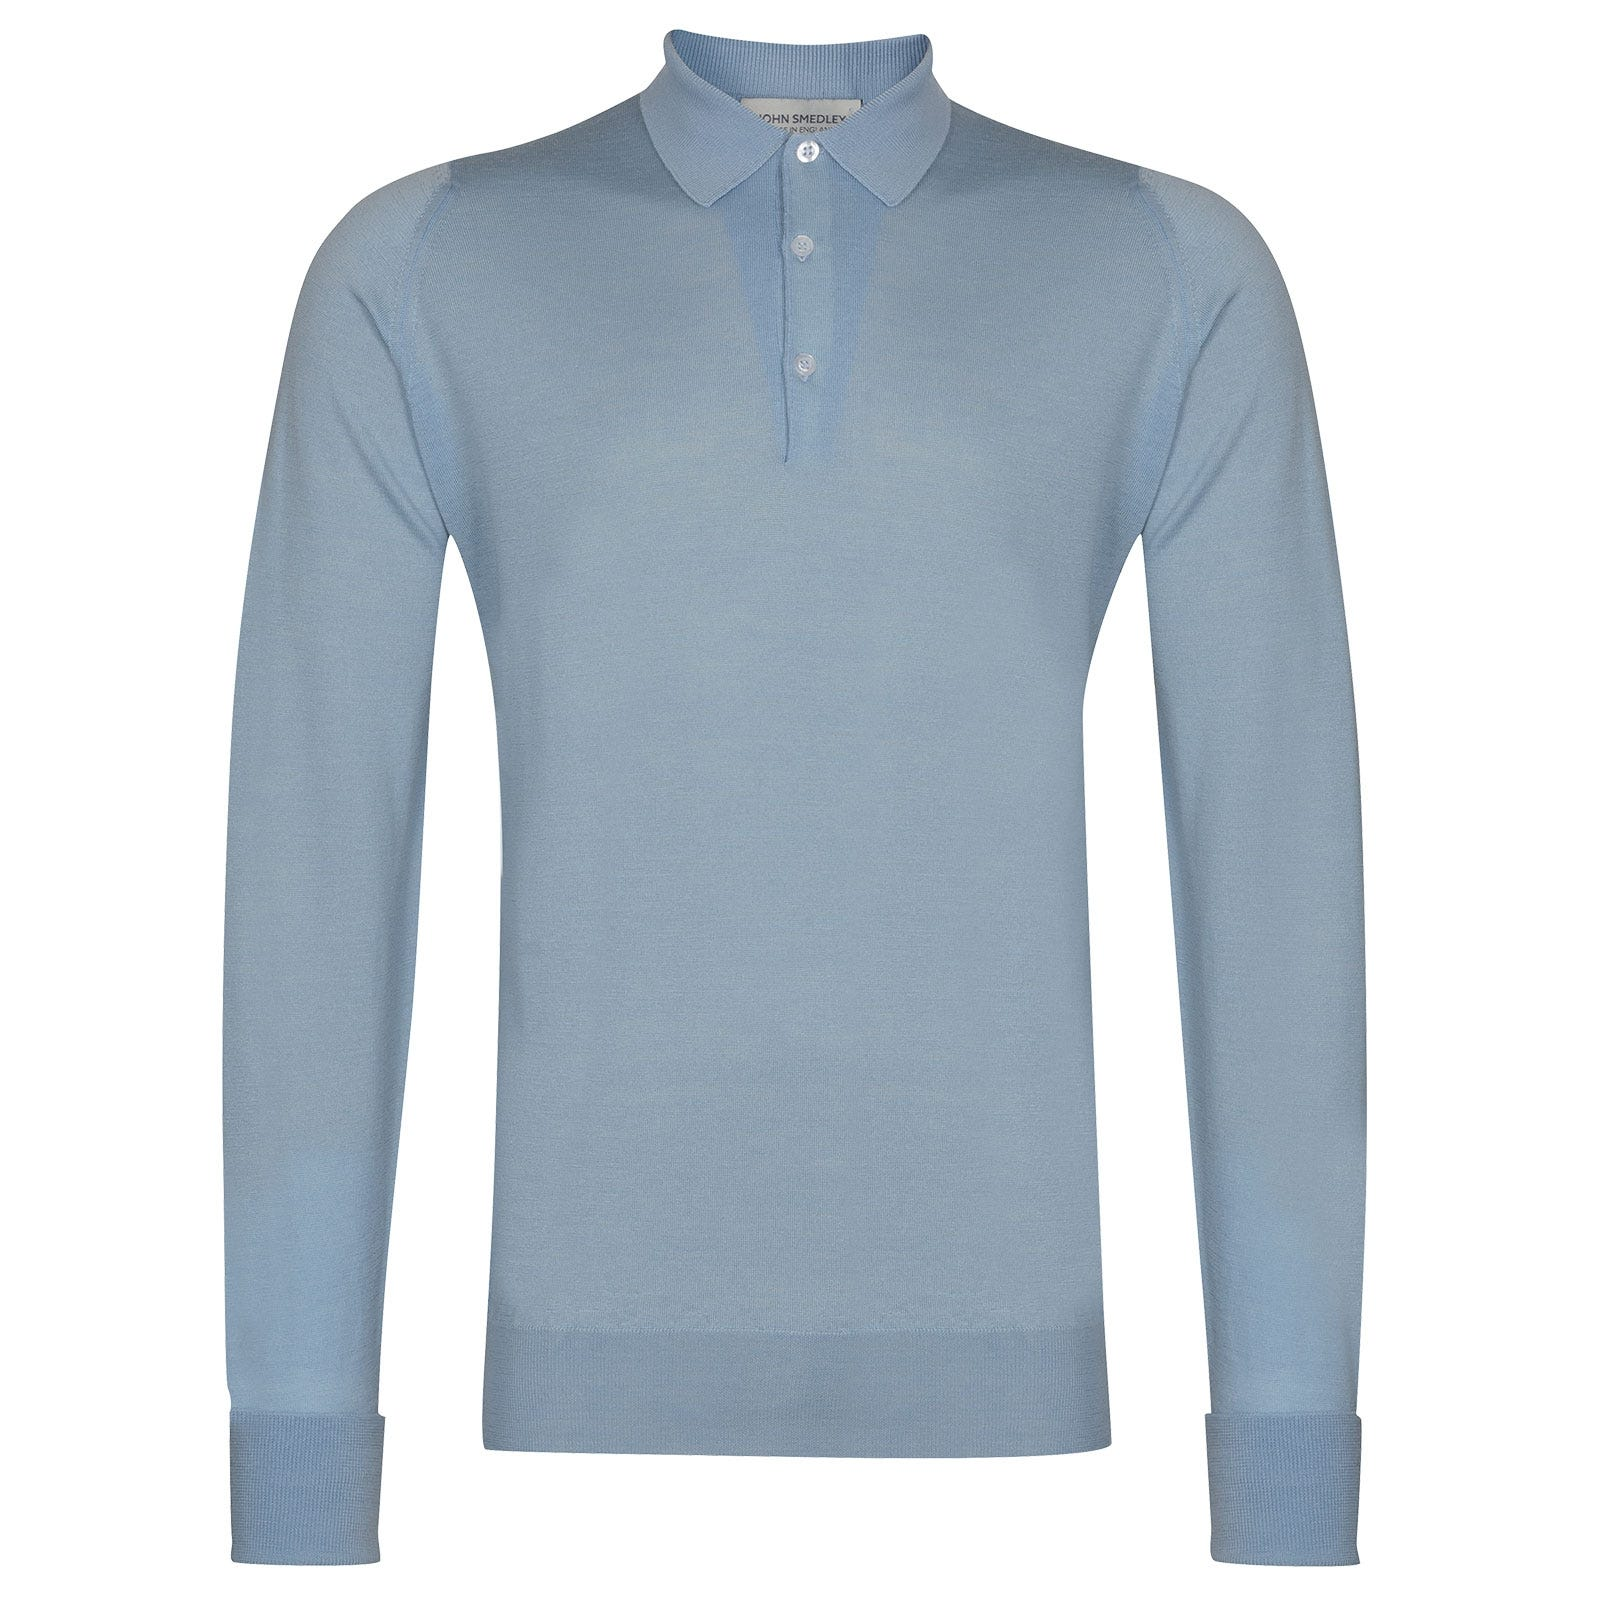 John Smedley Cotswold in Dusk Blue Shirt-SML